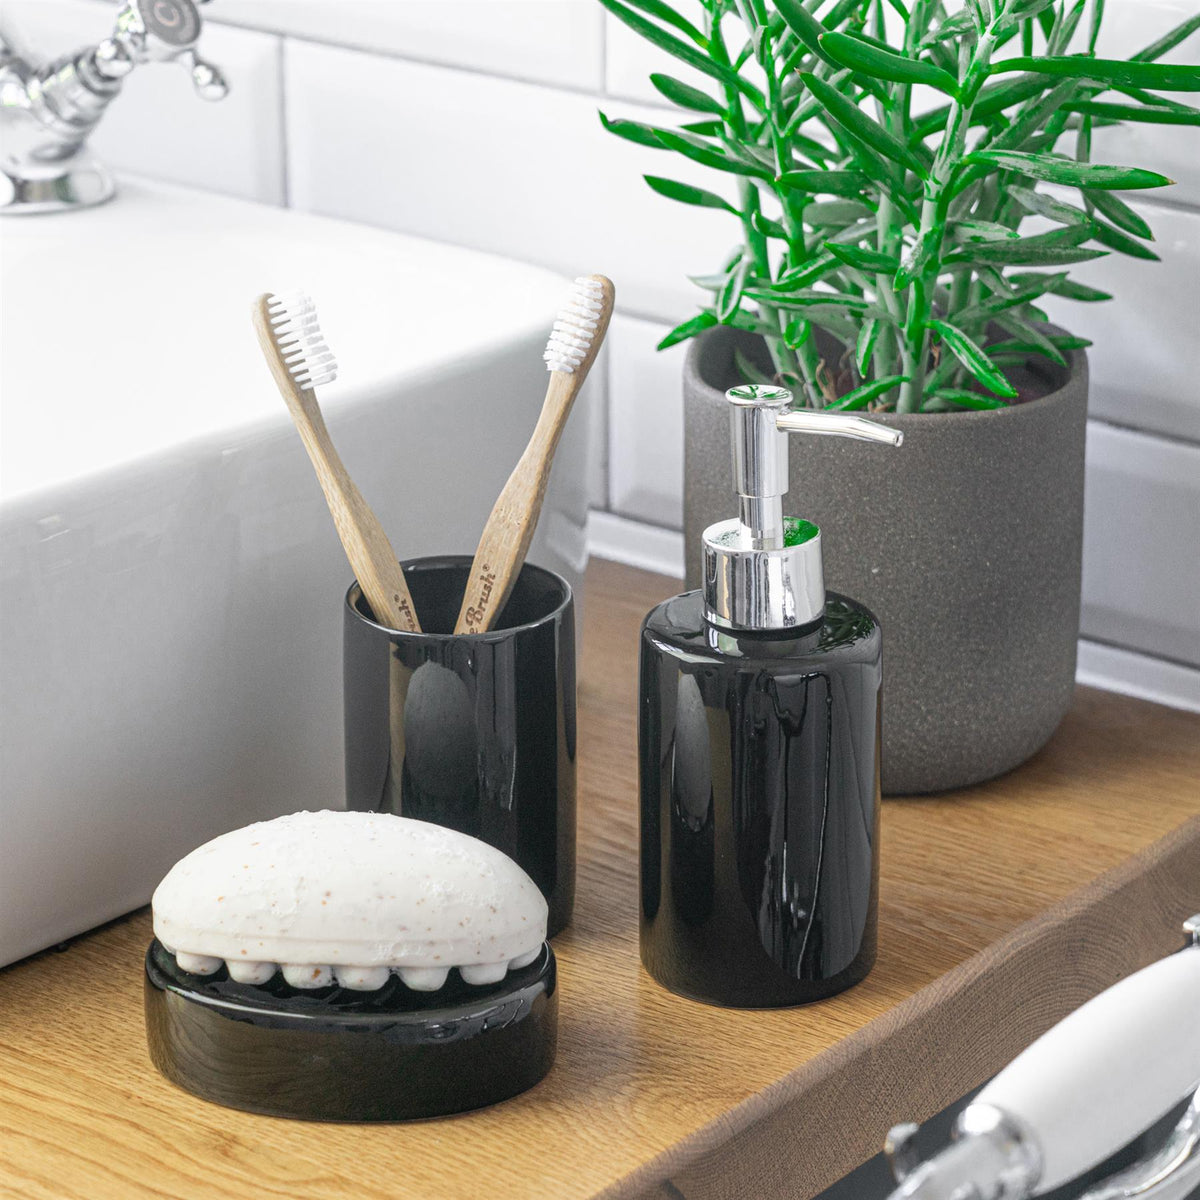 Harbour Housewares Ceramic Soap Saver Dish - Black